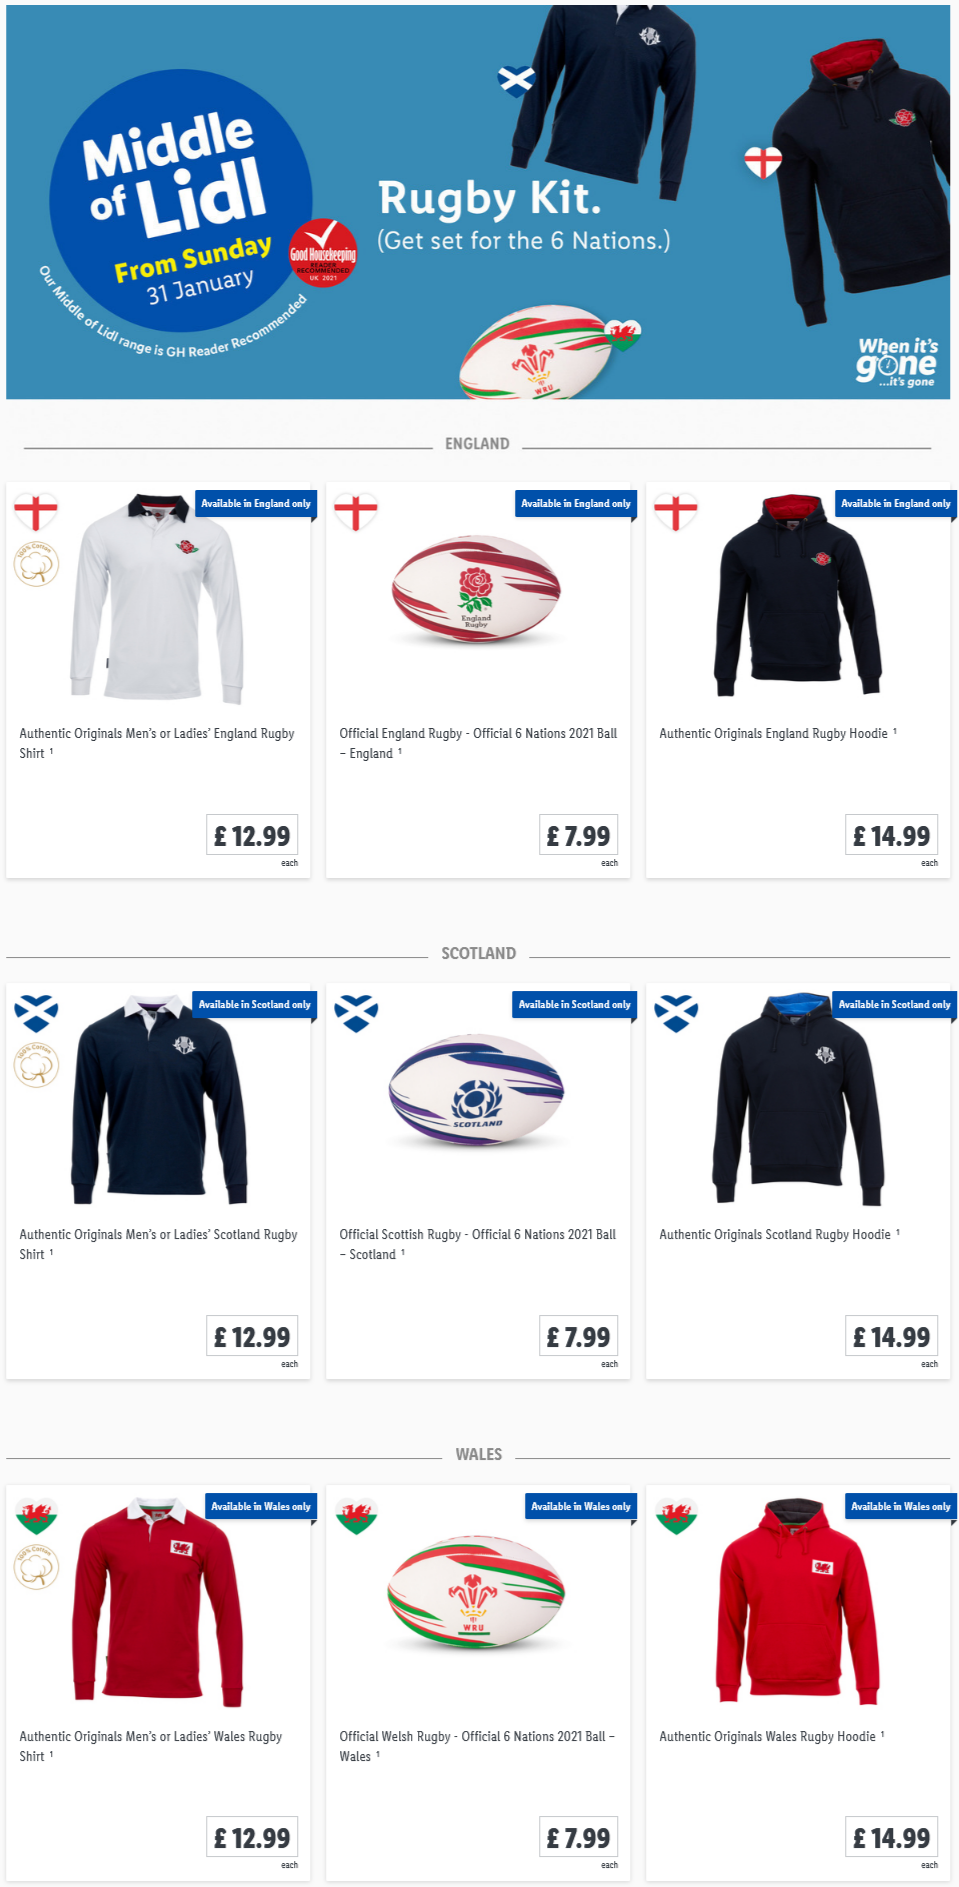 LiDL Rugby Kit from 31st January 2021 LiDL Sunday Offers